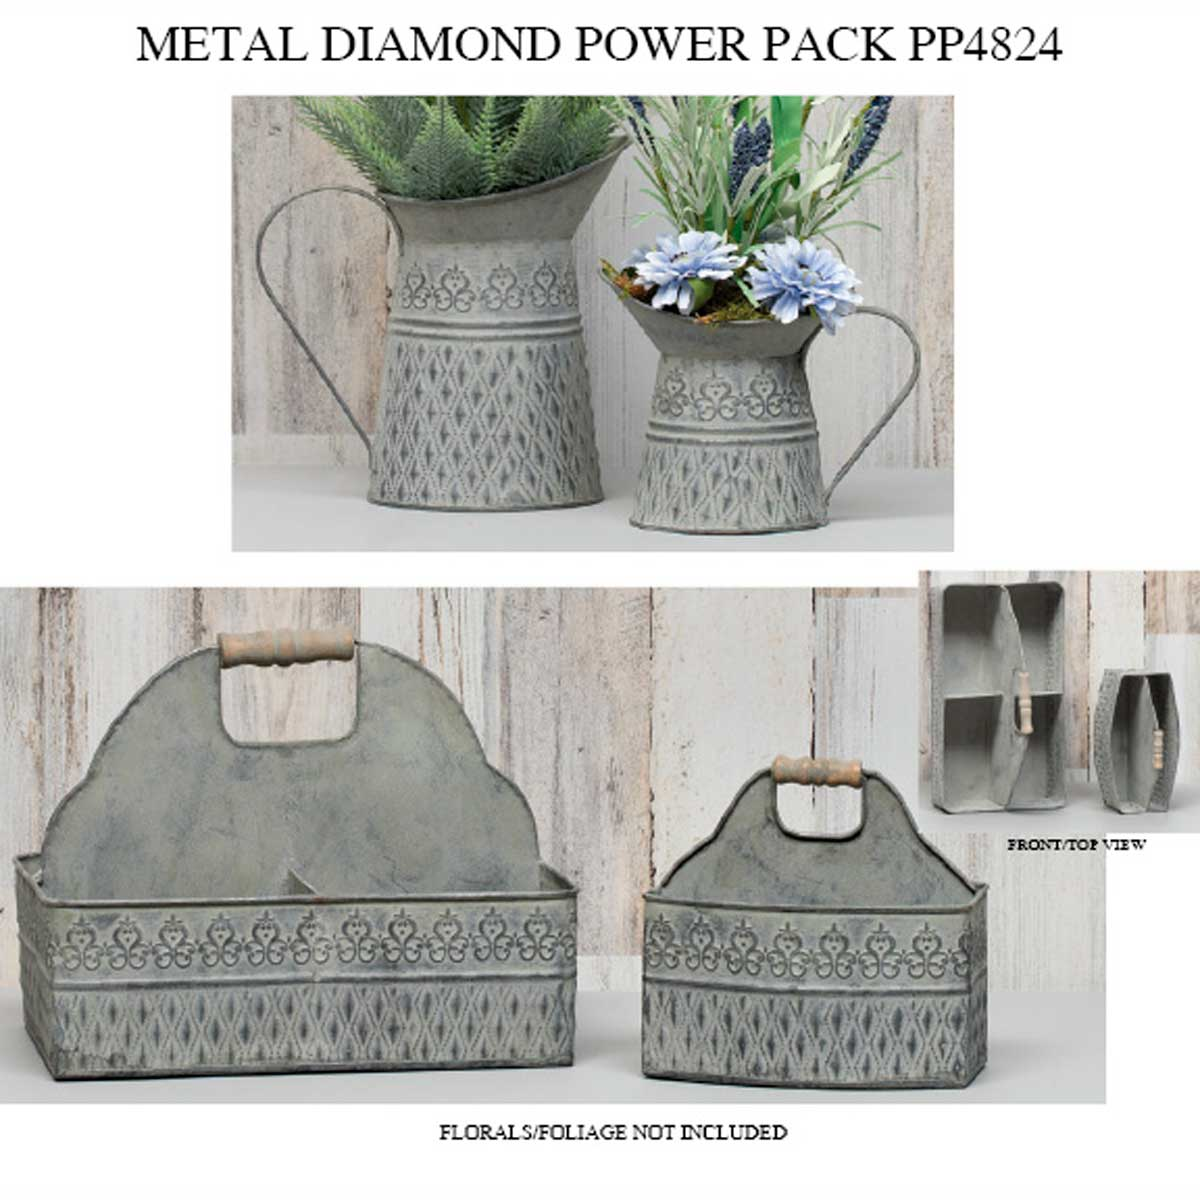 METAL DIAMOND POWER PACK 7 UNITS